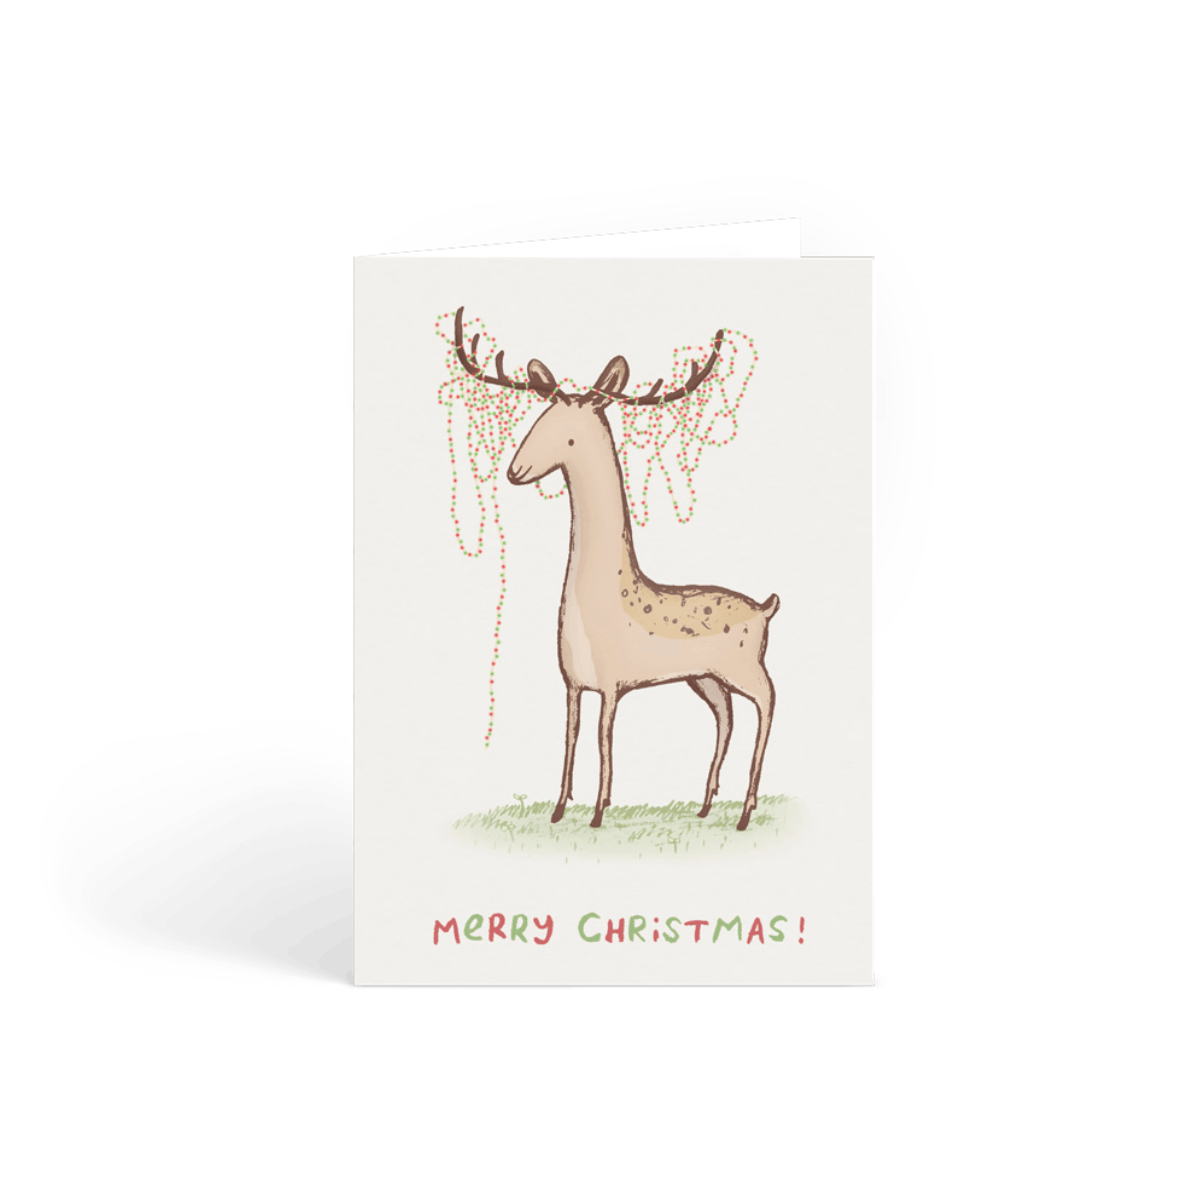 Https%3a%2f%2fwww.papier.com%2fproduct image%2f14532%2f2%2fchristmas deer 3876 front 1480421212.png?ixlib=rb 1.1